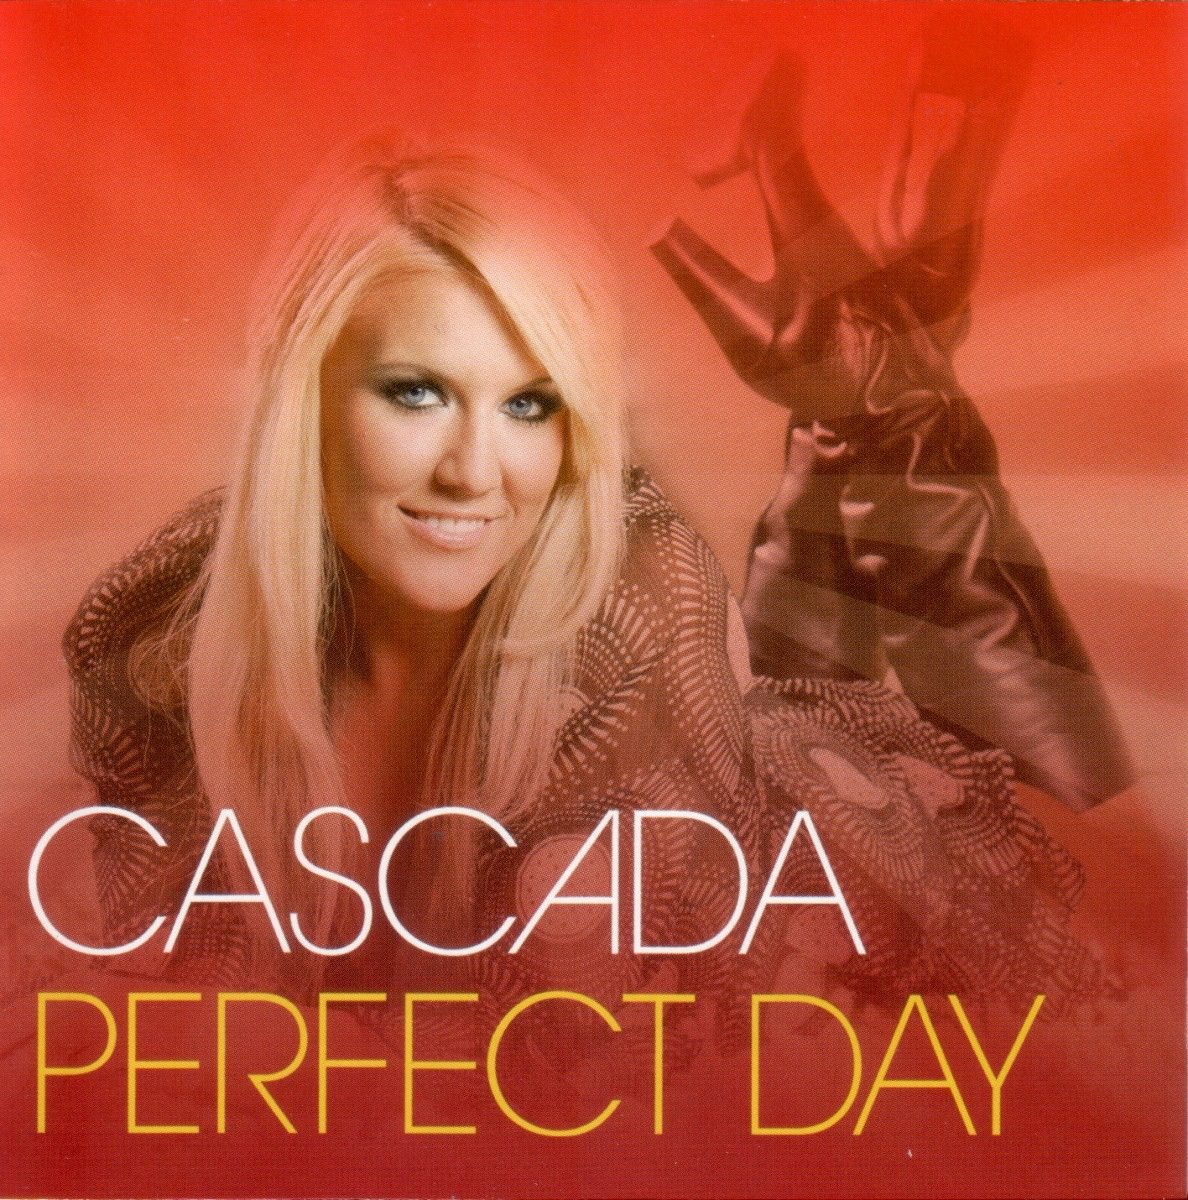 Cascada - Perfect Day album cover